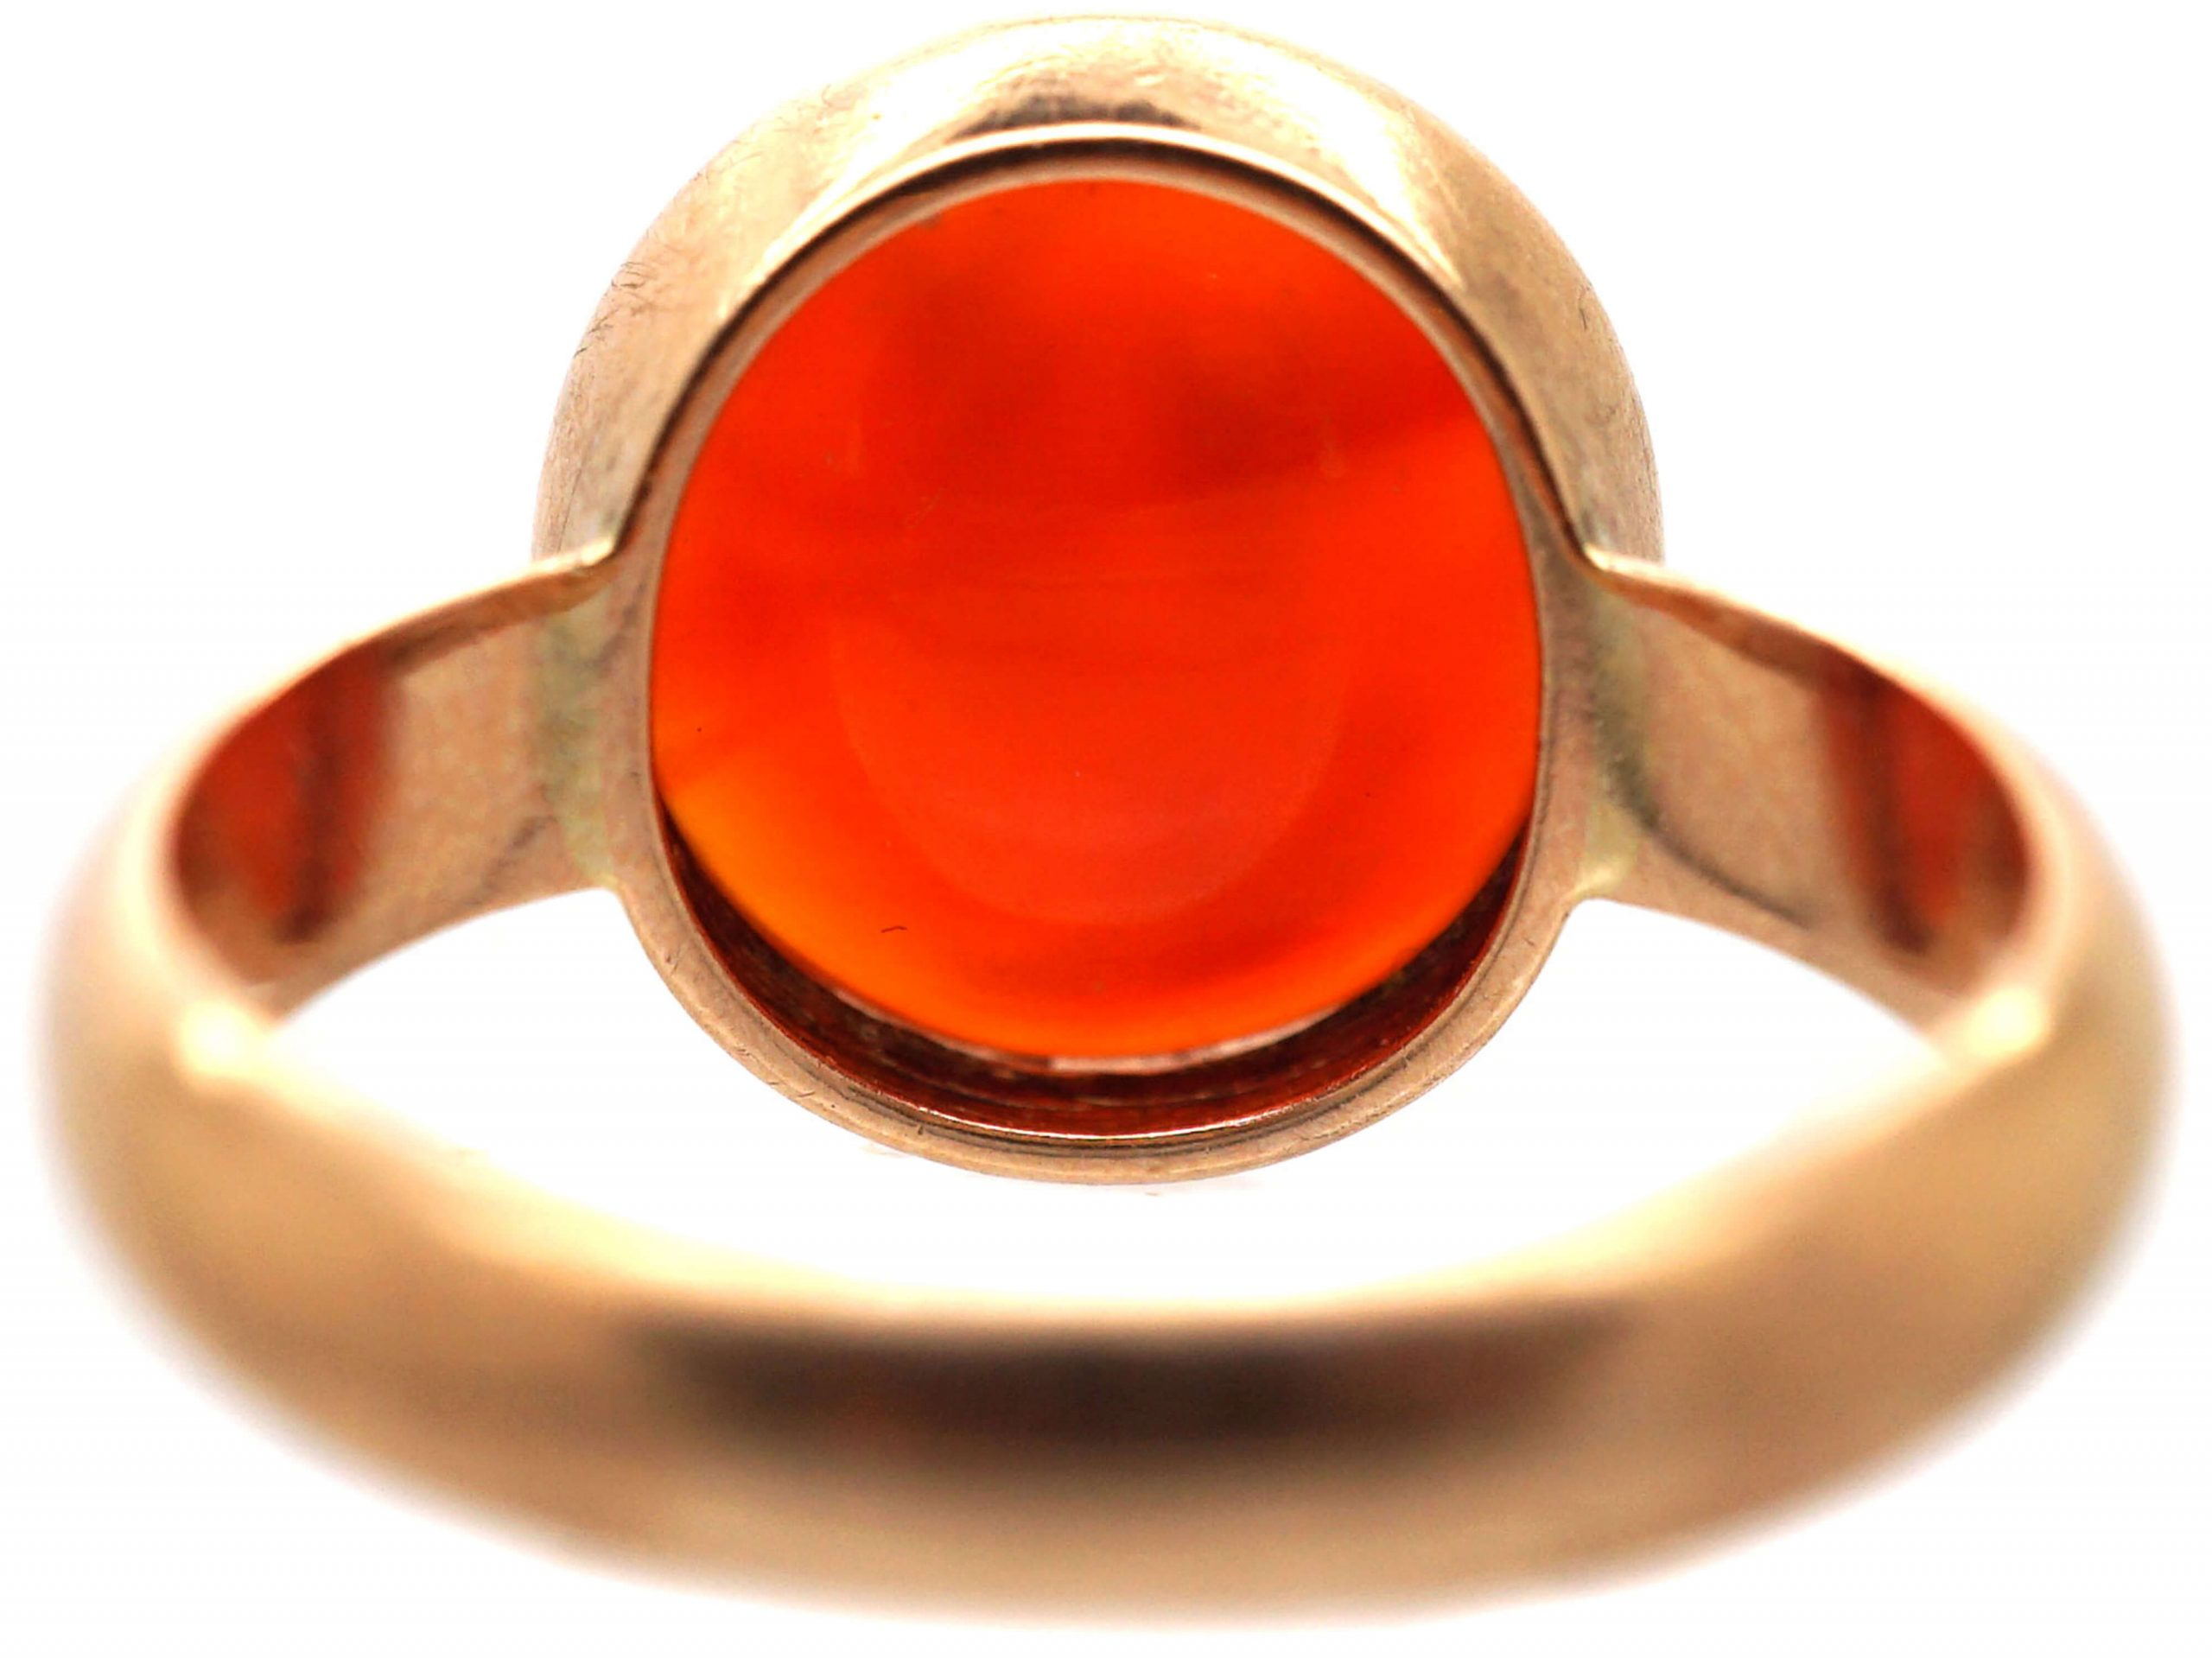 Edwardian 15ct Gold Carnelian Ring with Intaglio of Hellenistic Attic Helmeted Warrior